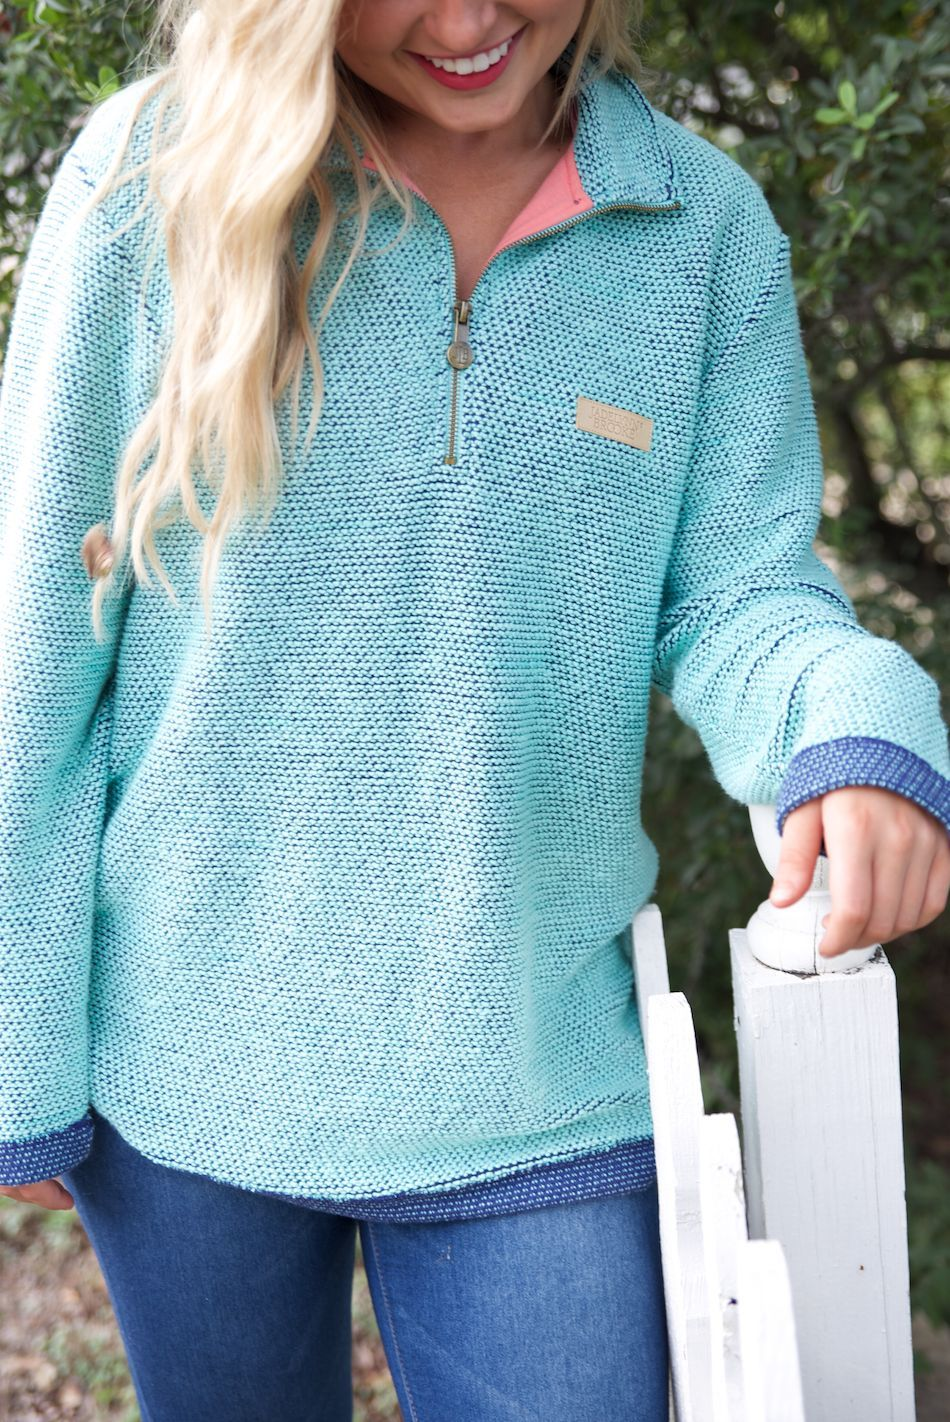 Our most-favorite creation ever - The JLB Boyfriend Pullover - the softest, most unique, light-weight, most INSANELY COMFY fabric ever! Guard this jacket with your life because EVERYONE is going to wa